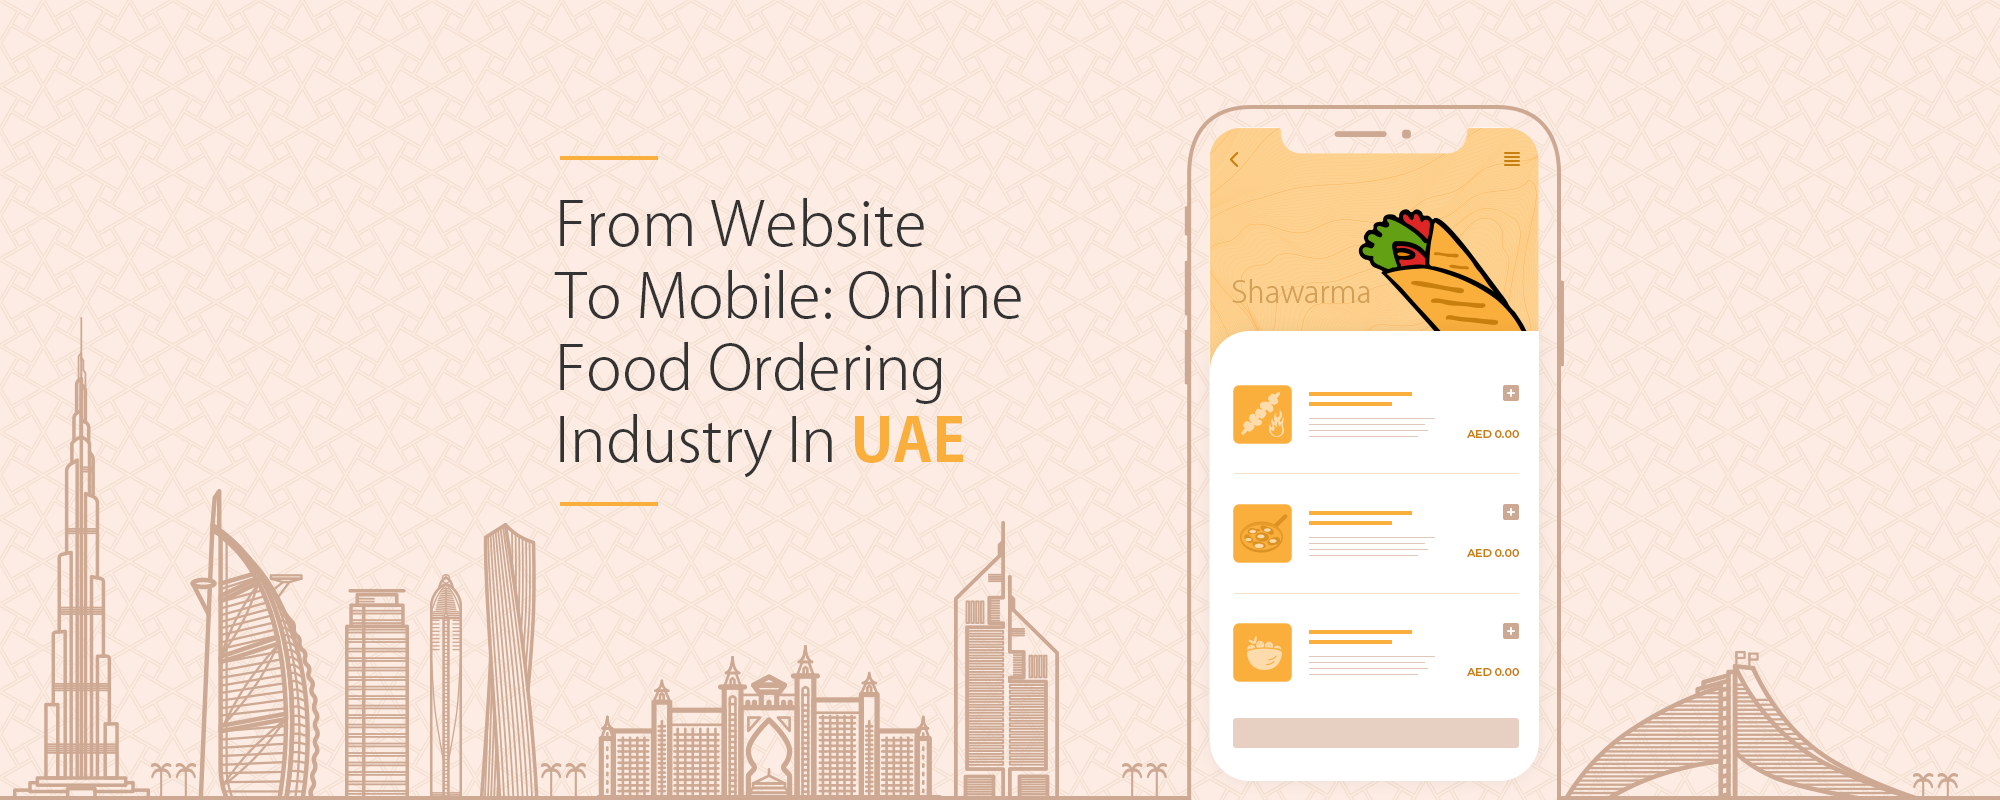 From Website to Mobile: How the Online Food Ordering and Delivery Industry Evolved in the UAE?